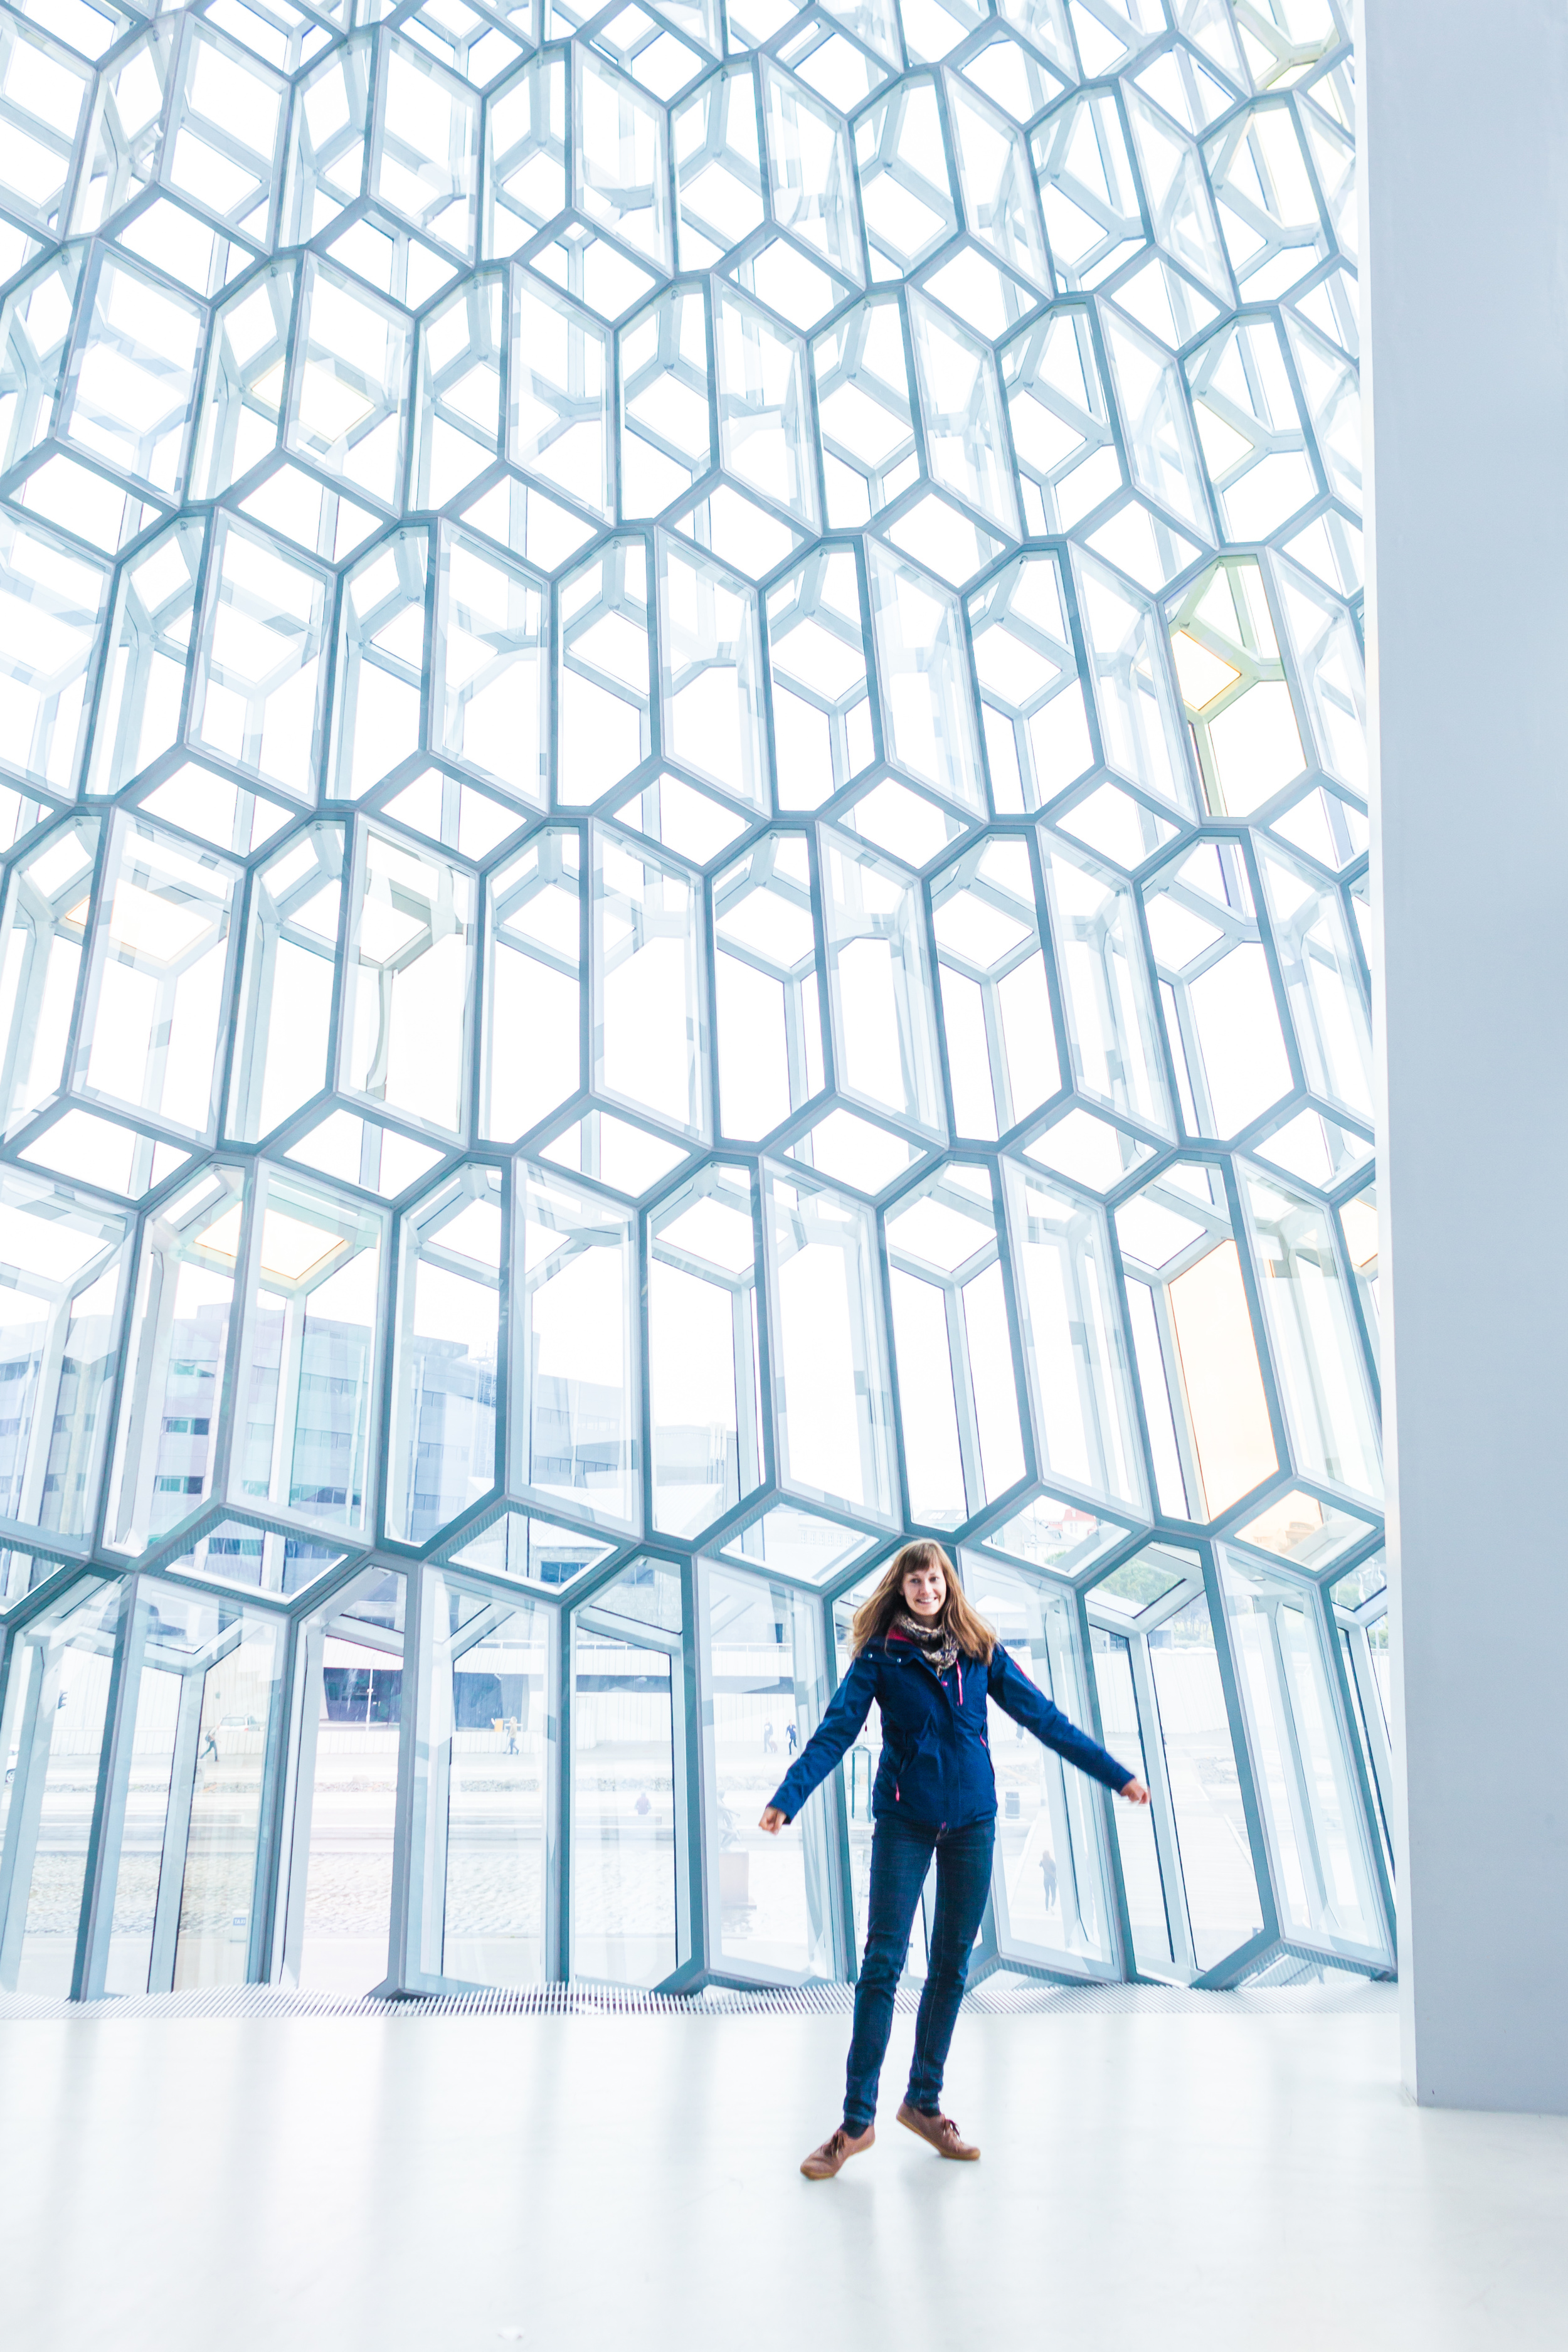 Theresa from Germany. Harpa Concert Hall, Reykjavik.